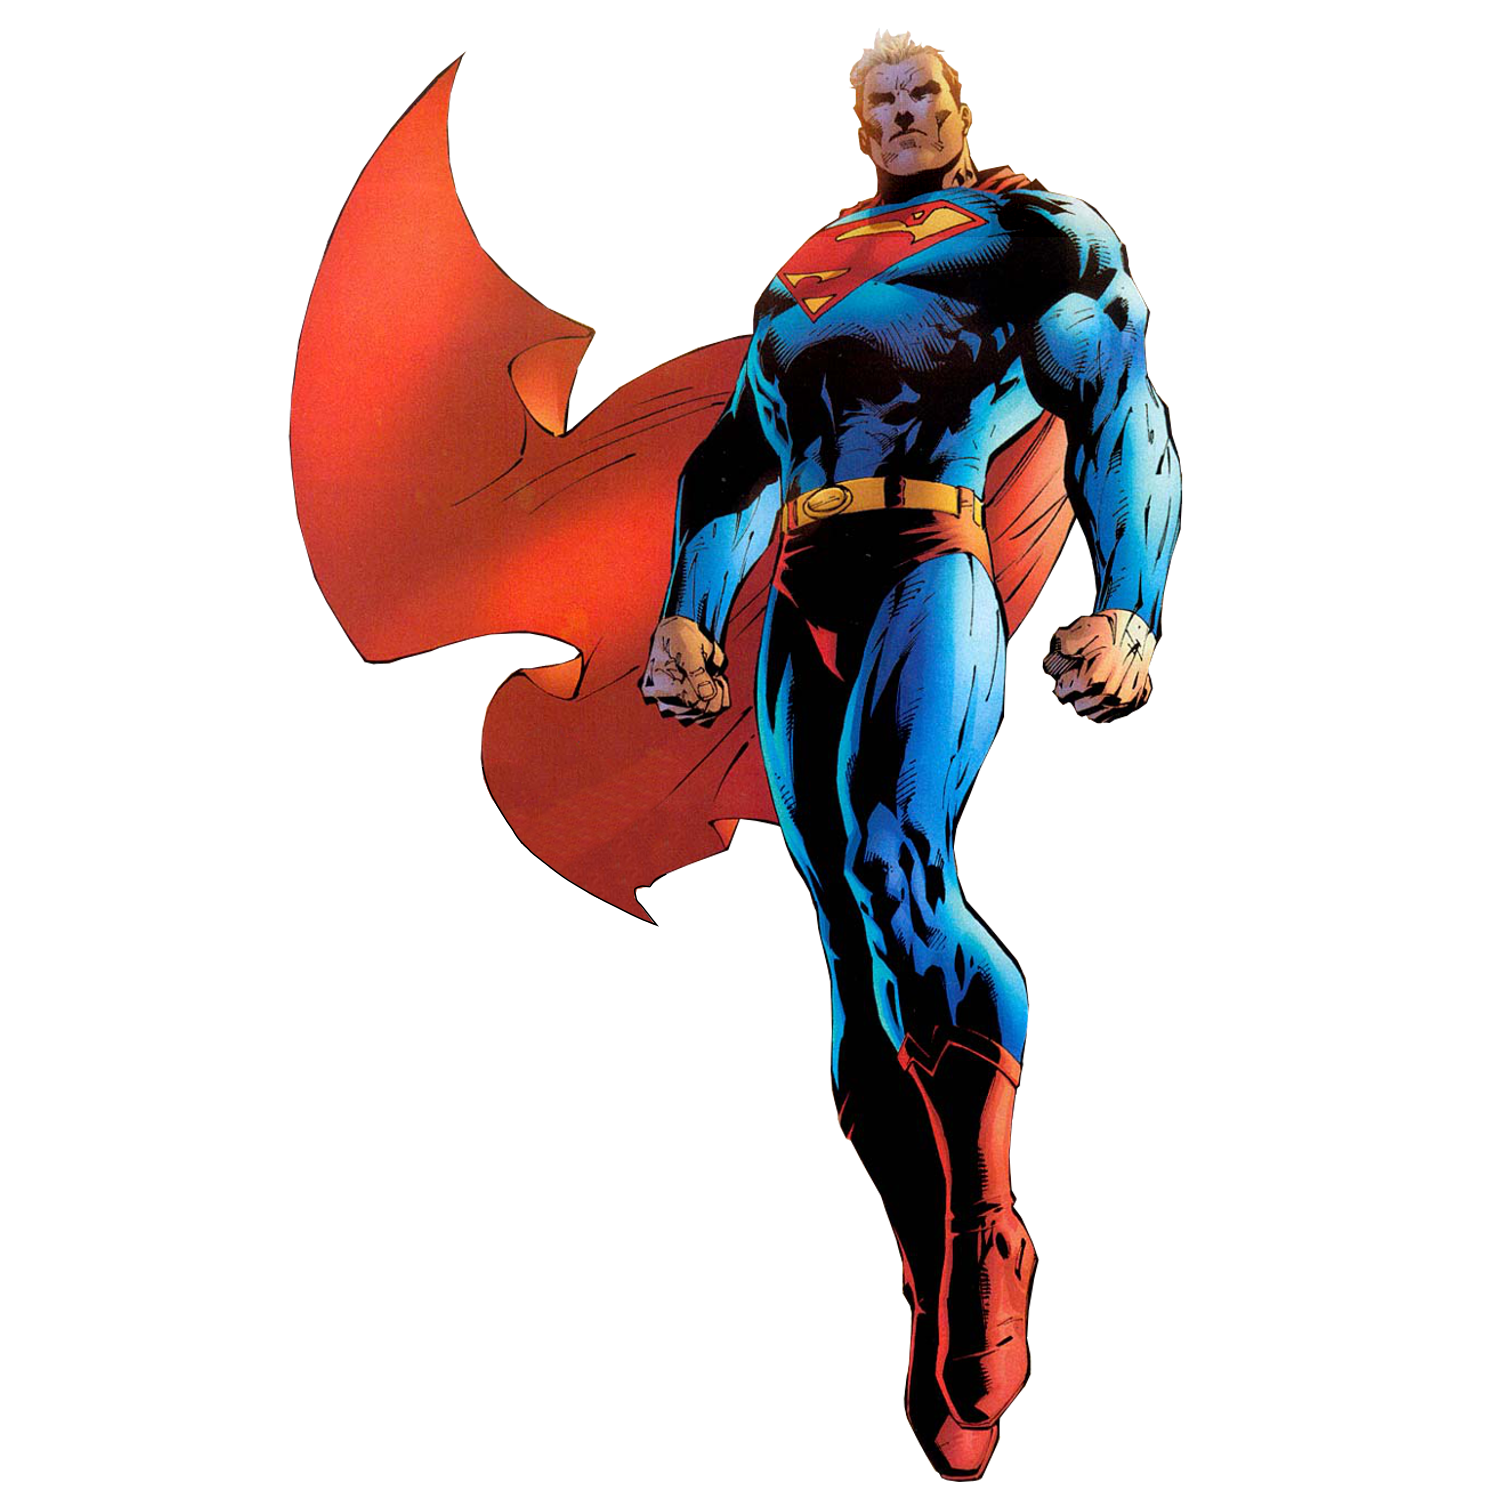 Download And Use Superman Png Clipart image #19813